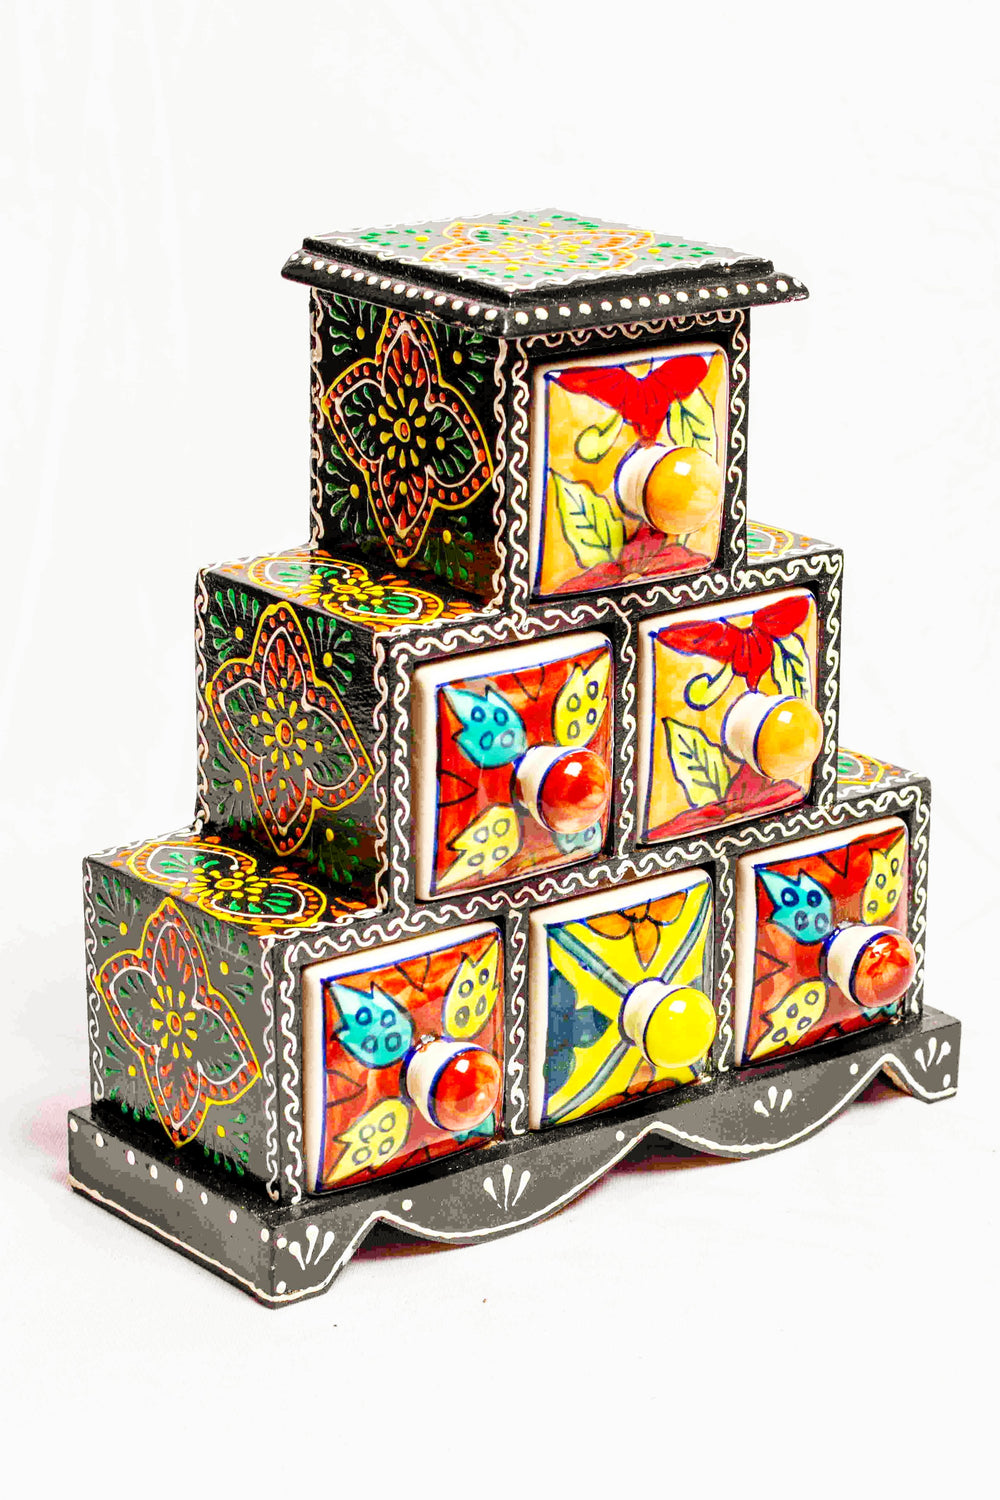 Chest of drawers in a black framed wooden box with painted motifs, with 6 ceramic drawers